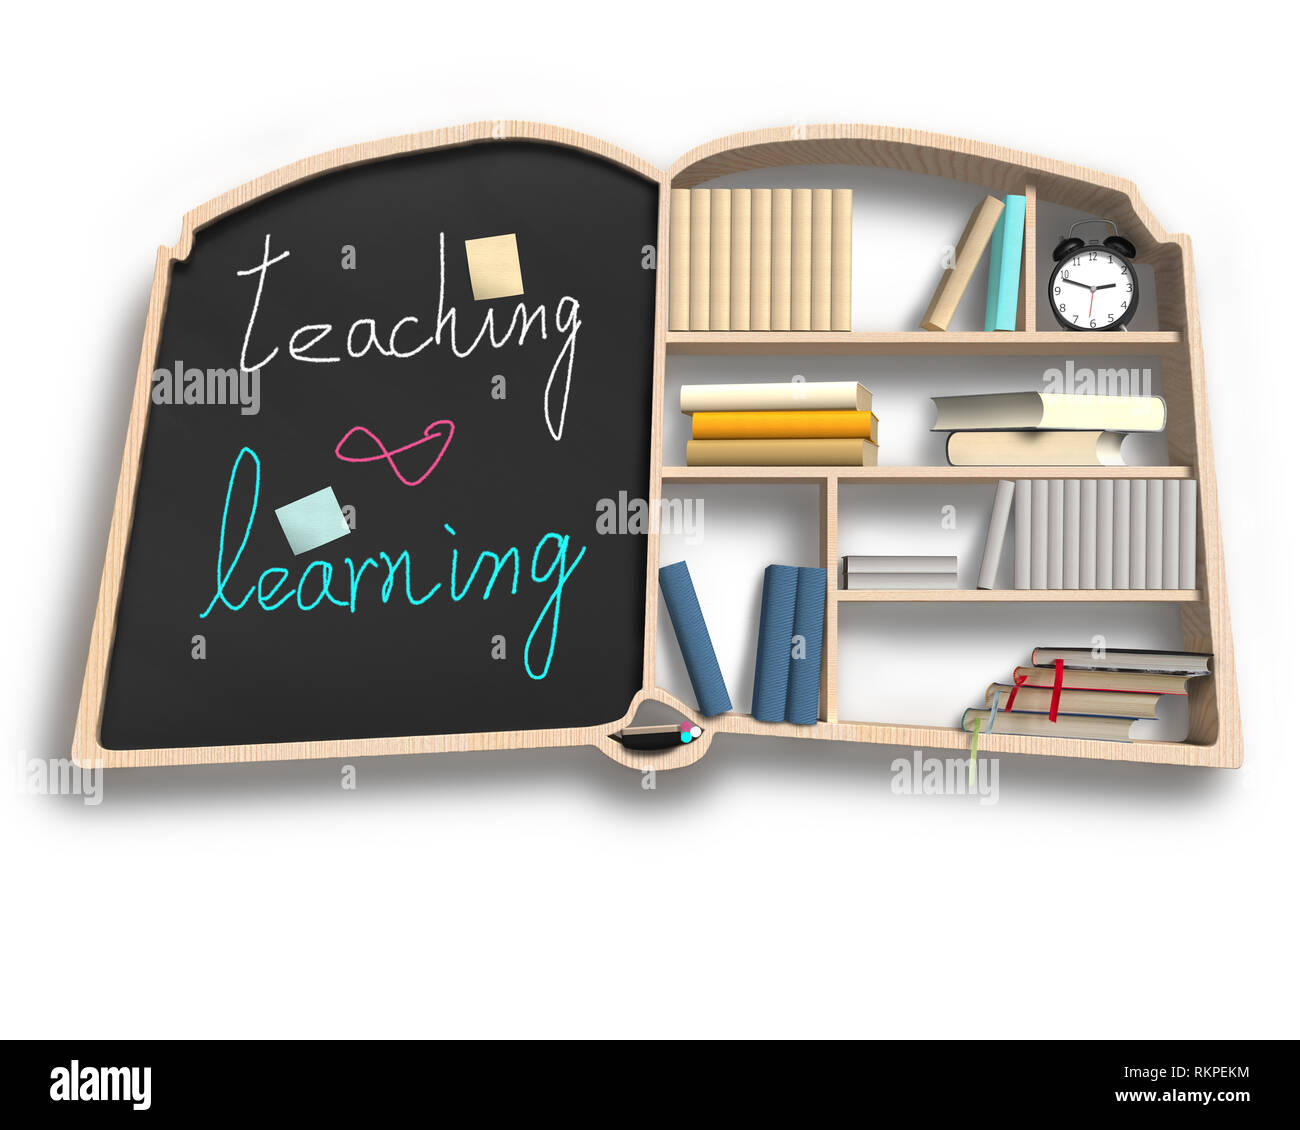 Bookshelf with blackboard in book shape isolated in white background - Stock Image